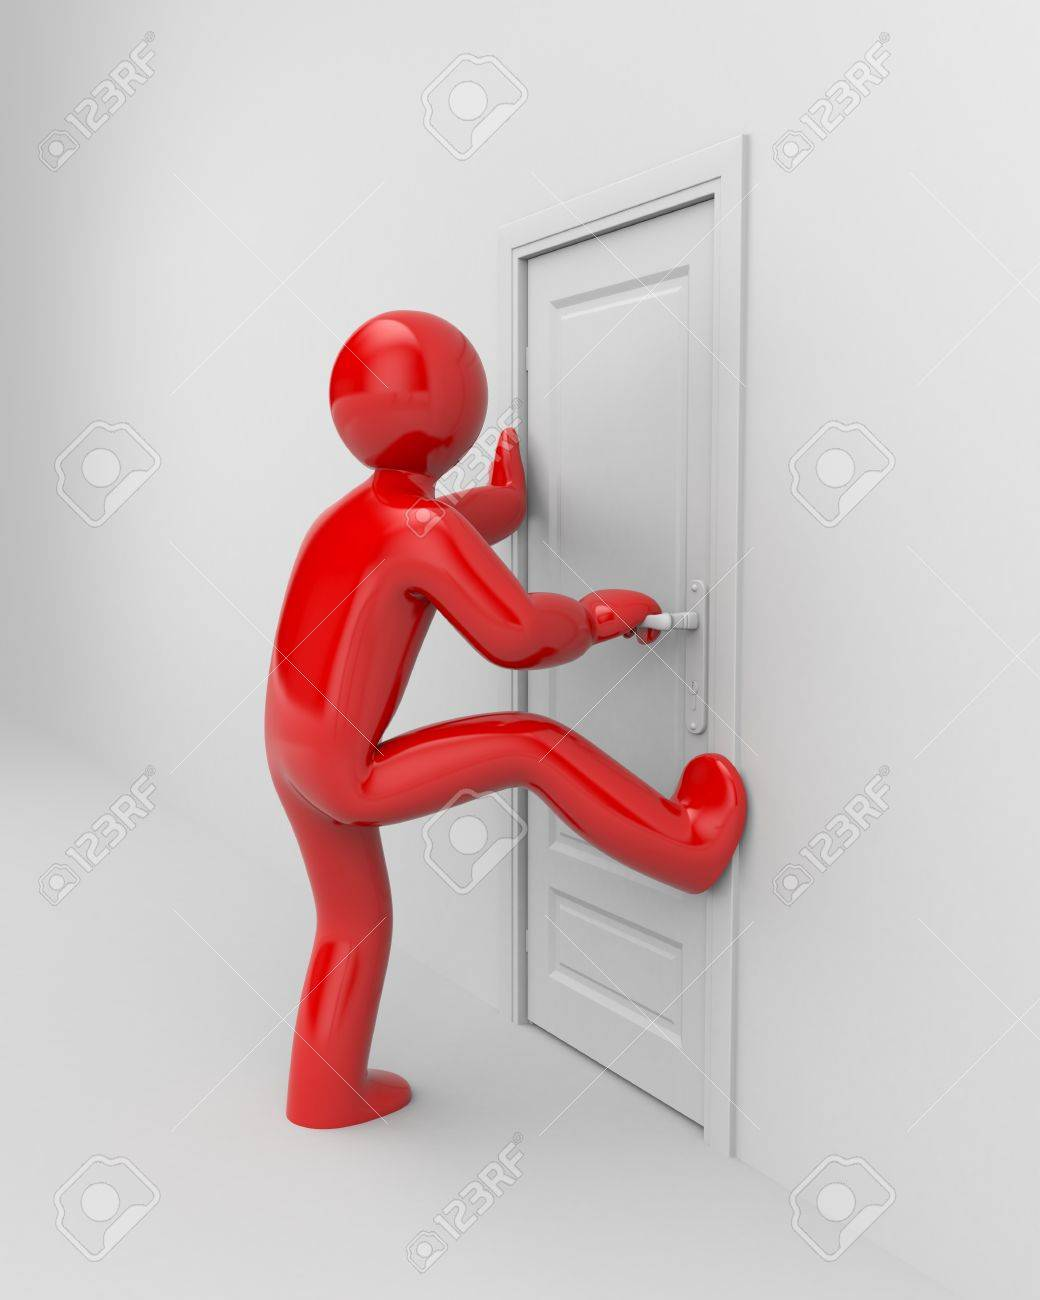 People trying to break into the door Stock Photo - 51734443 & People Trying To Break Into The Door Stock Photo Picture And ...